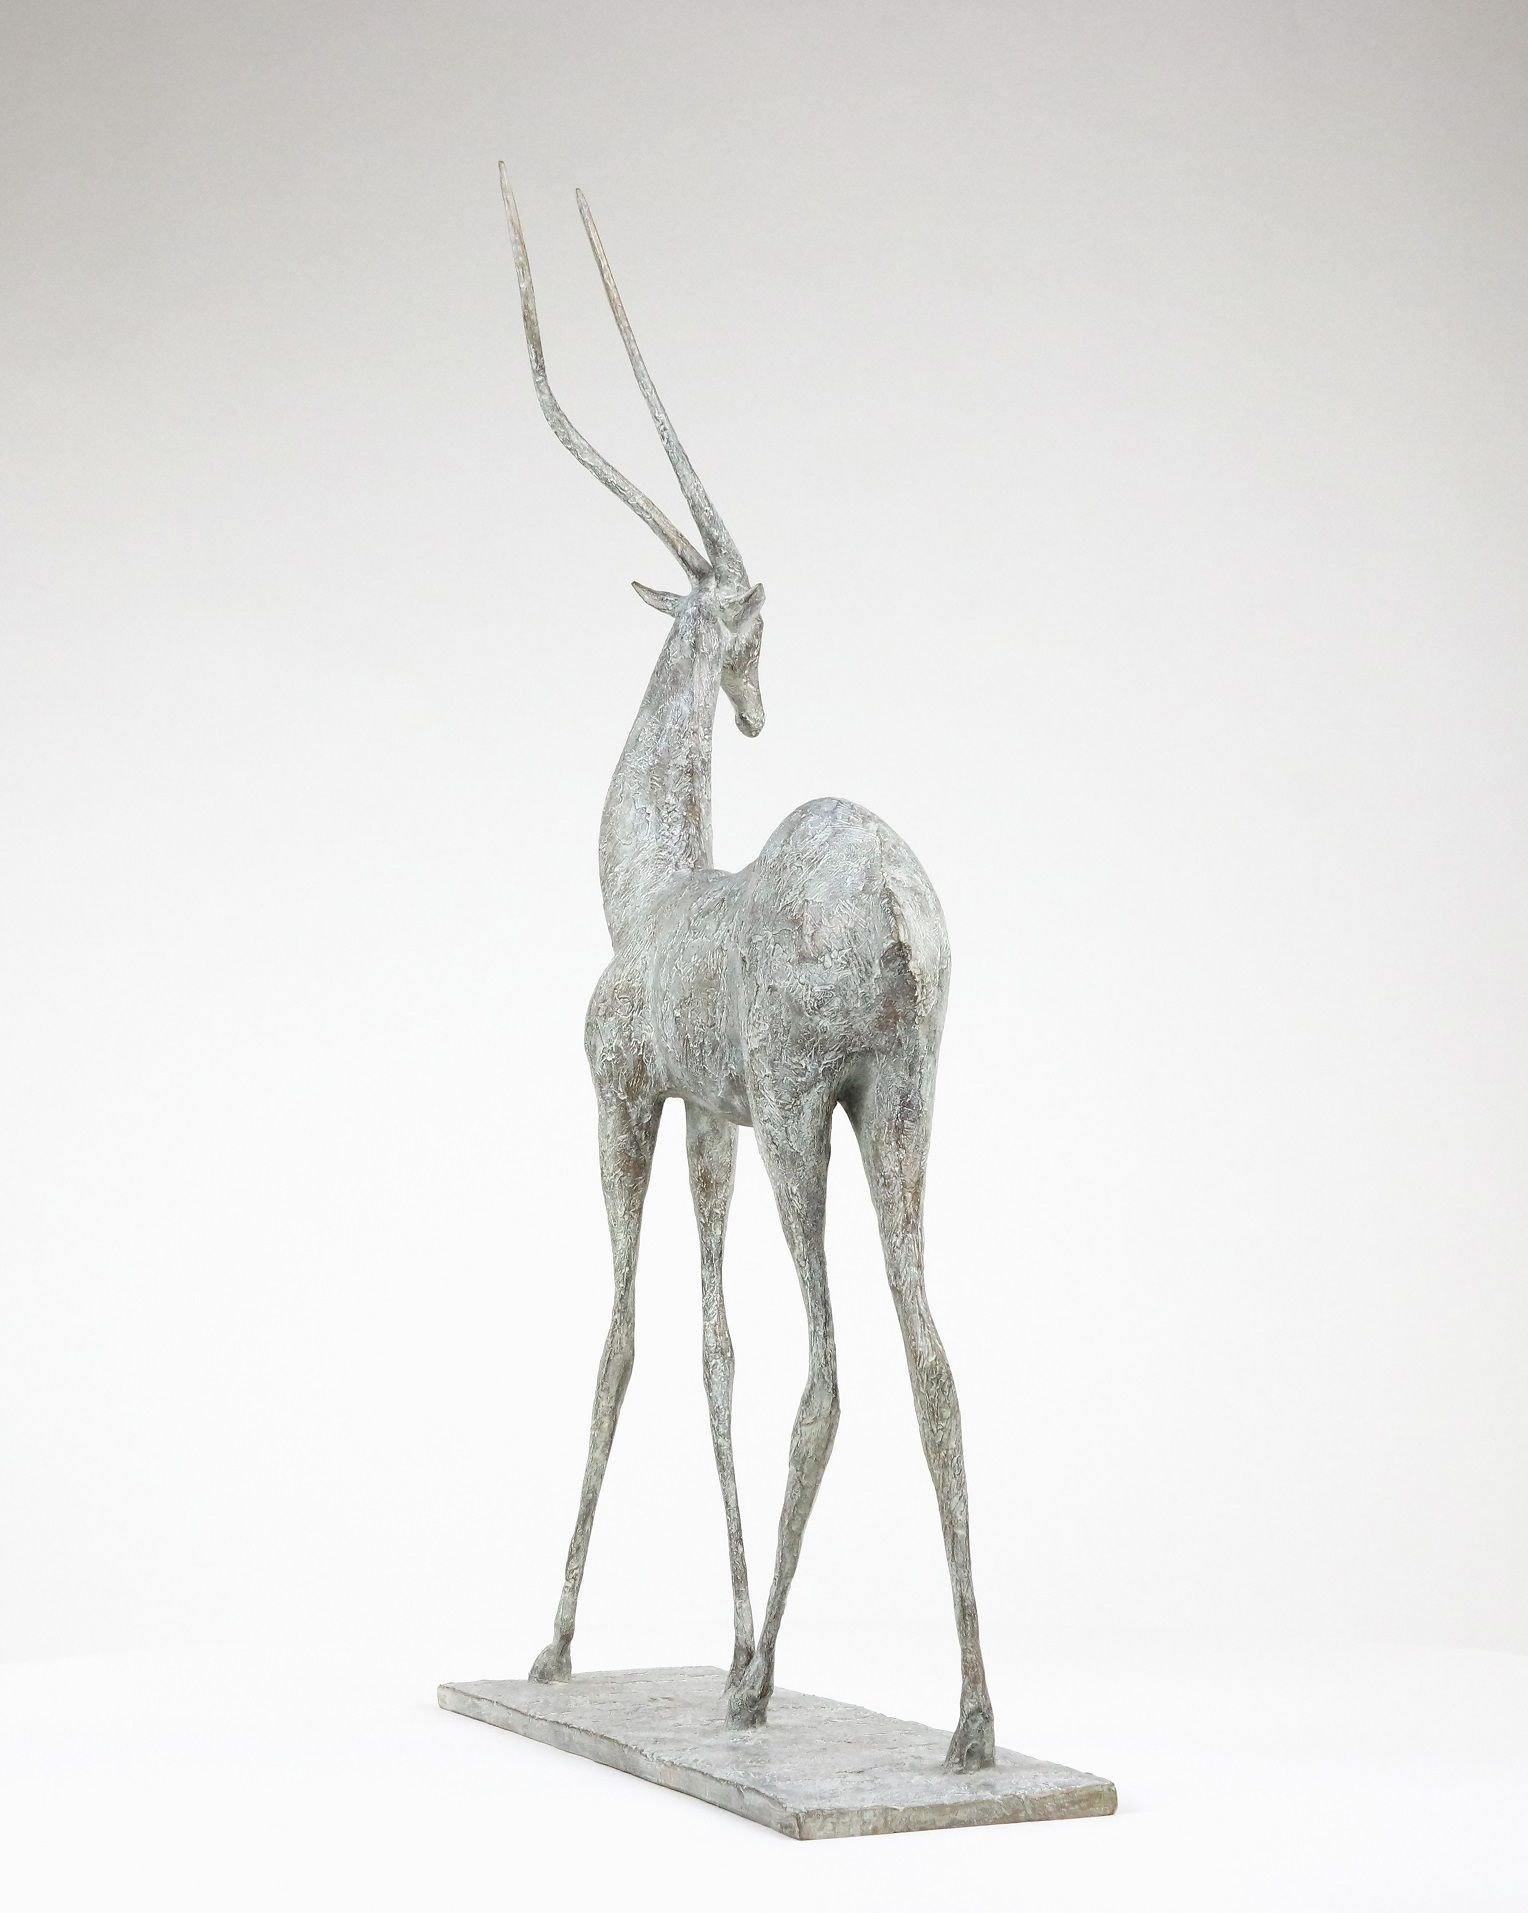 Gazelle I, Pierre Yermia,Sculpture, detail 2